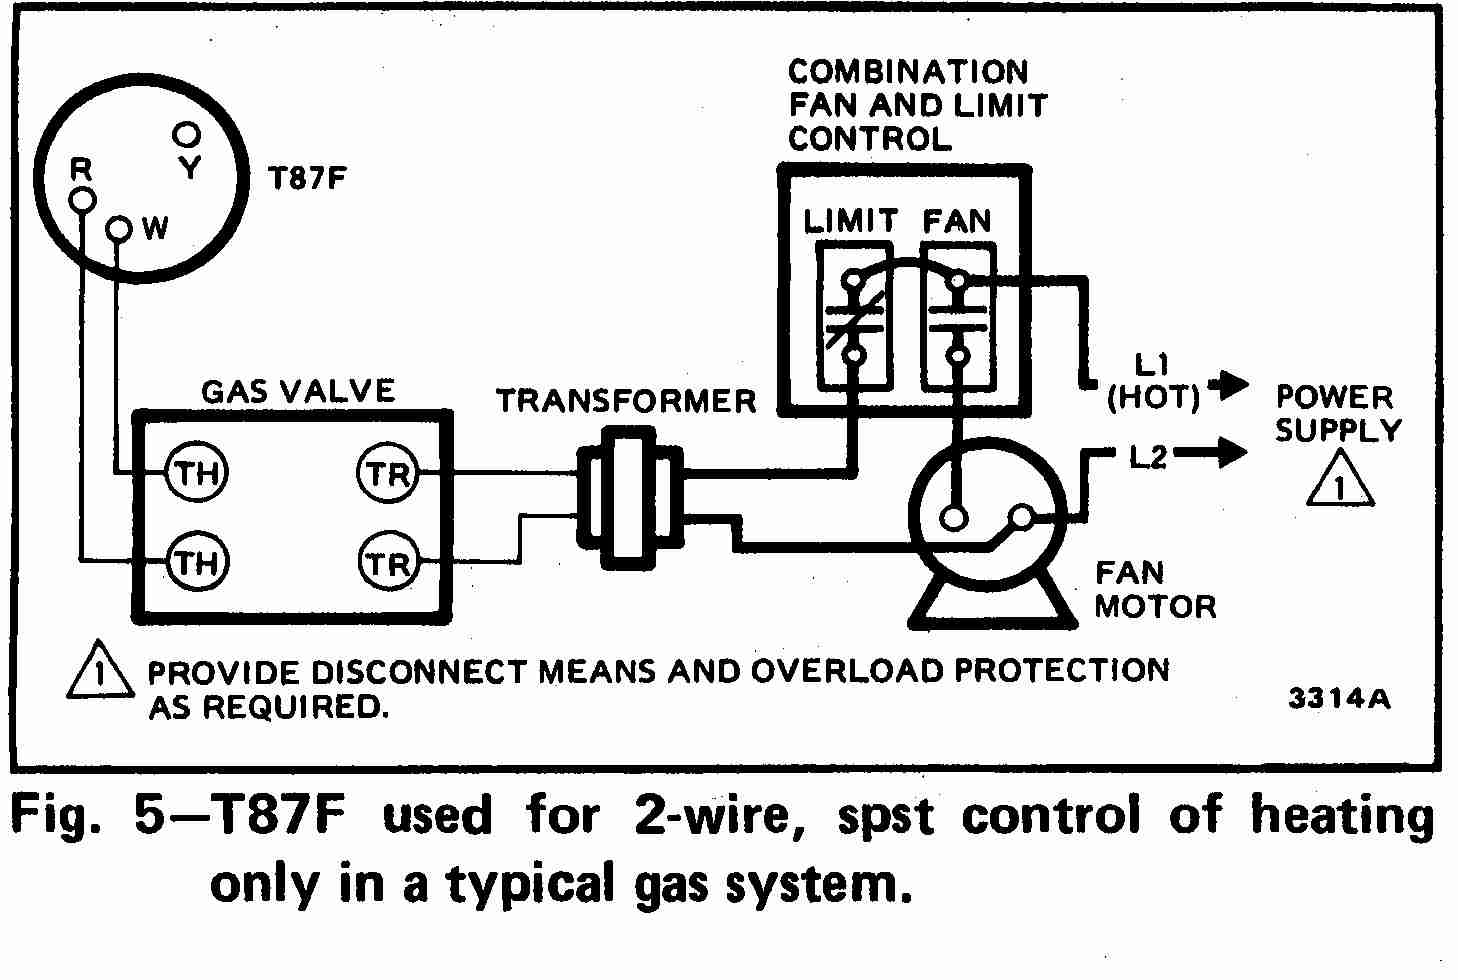 Williams Wall Furnace Wiring Diagram Electric - 3ld1 Isuzu Wiring Diagram -  vw-t5.tukune.jeanjaures37.fr | Williams Wall Furnace Control Wiring Diagram |  | Wiring Diagram Resource